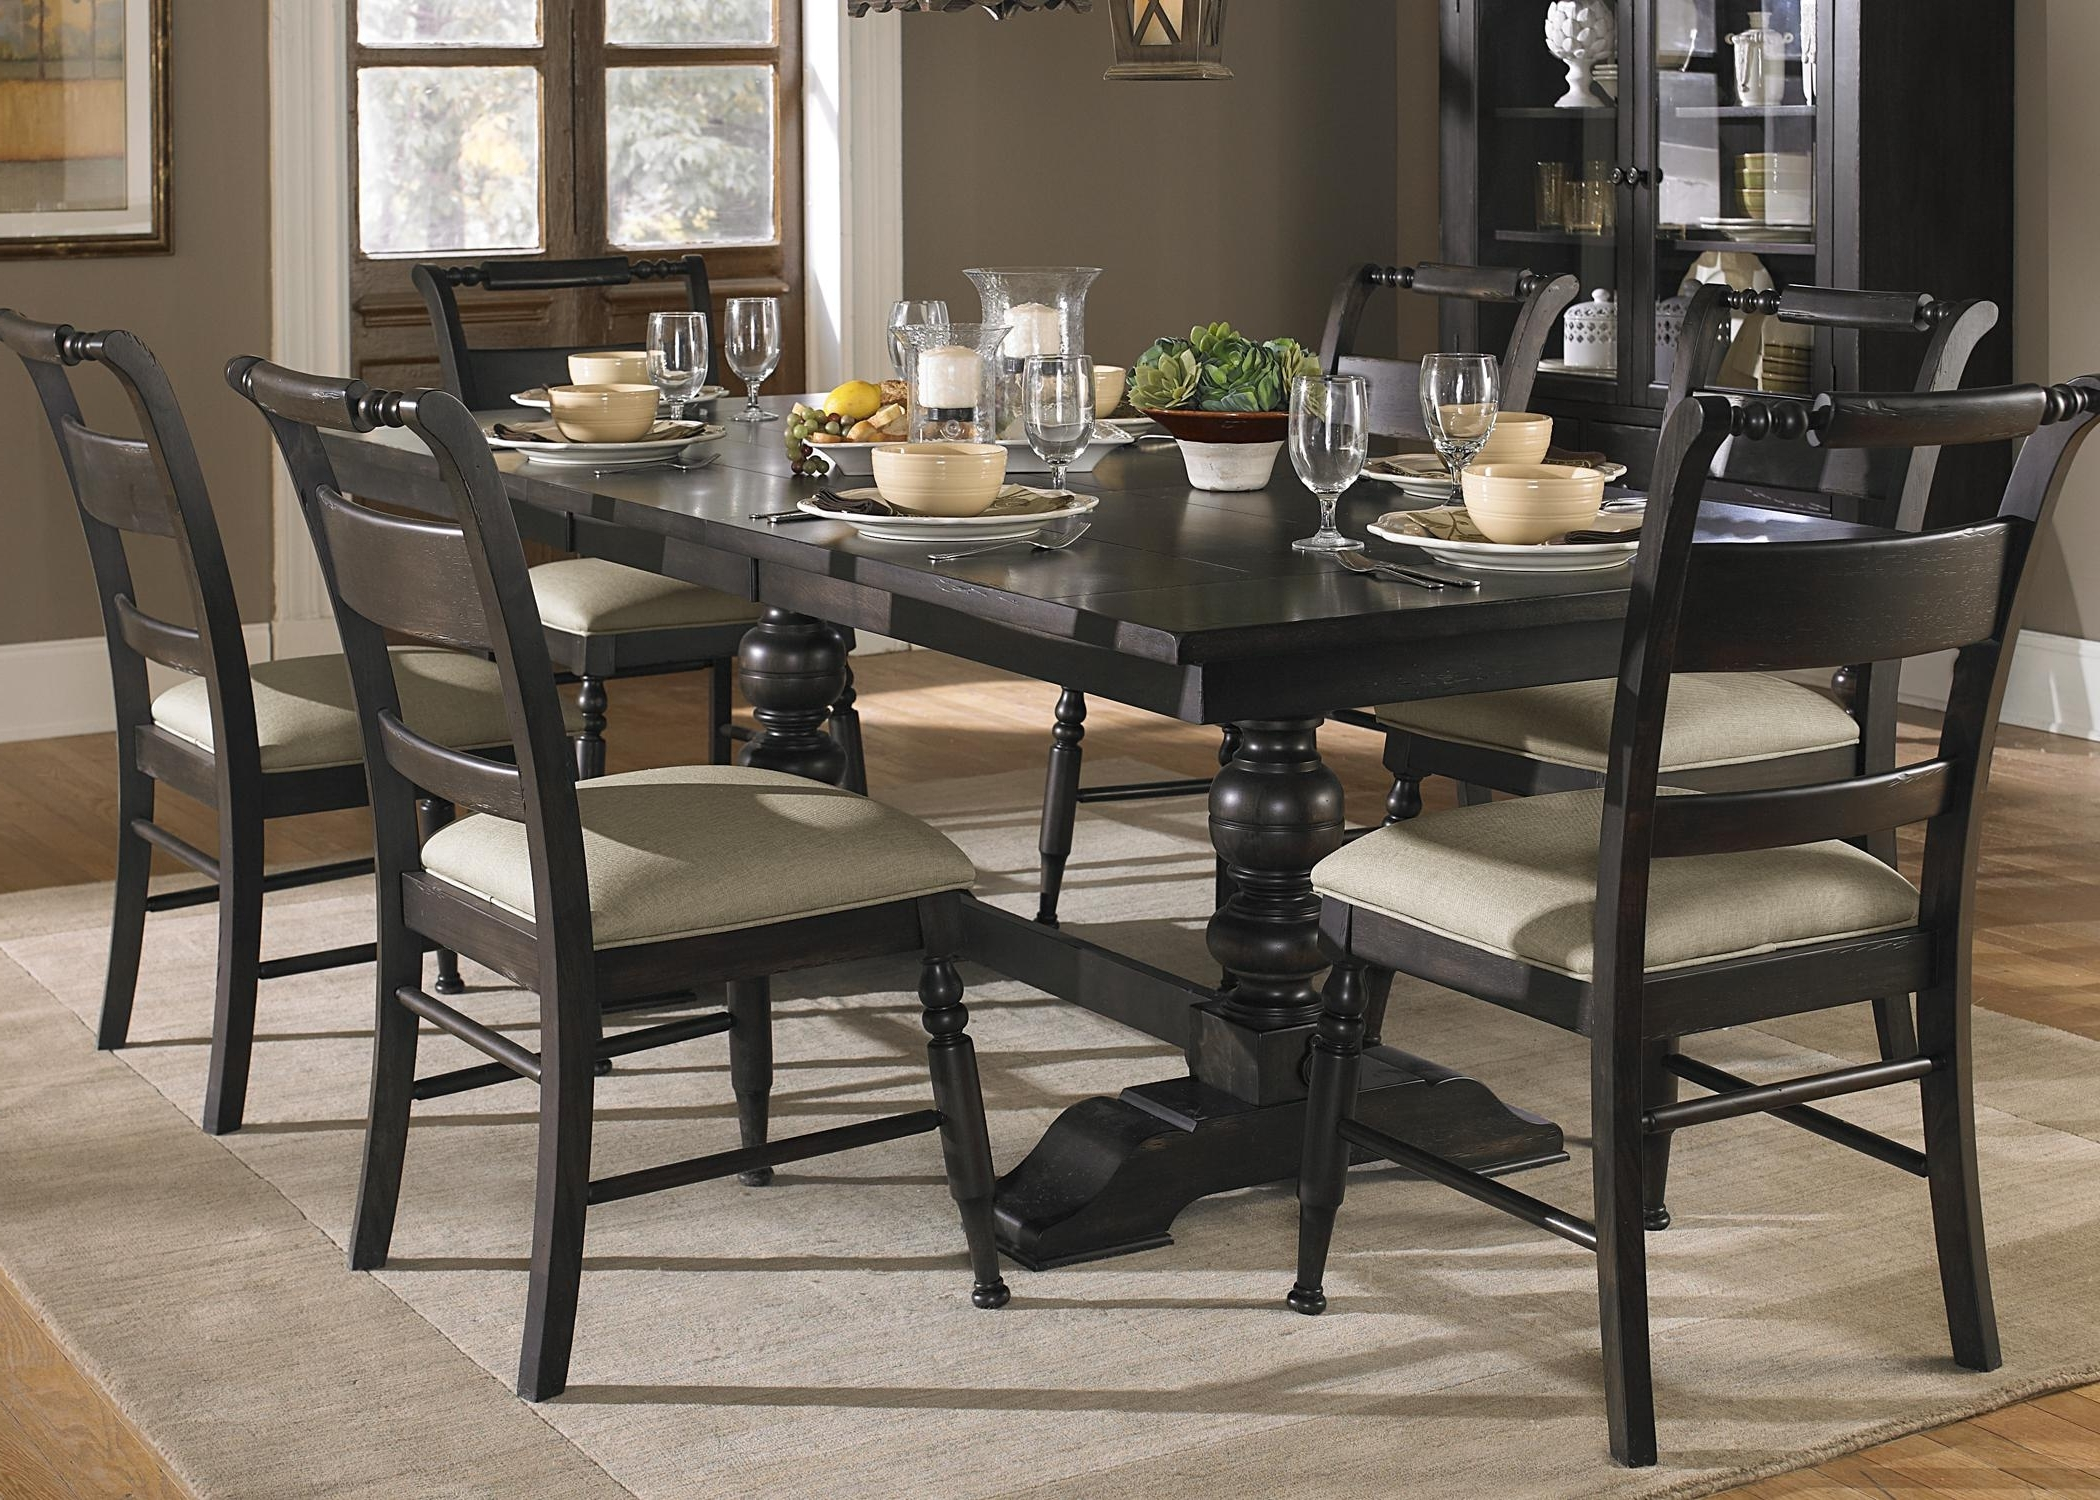 Attractive Design Trestle Dining Room Table — Boundless Table Ideas Pertaining To Recent Dining Room Tables (View 19 of 25)